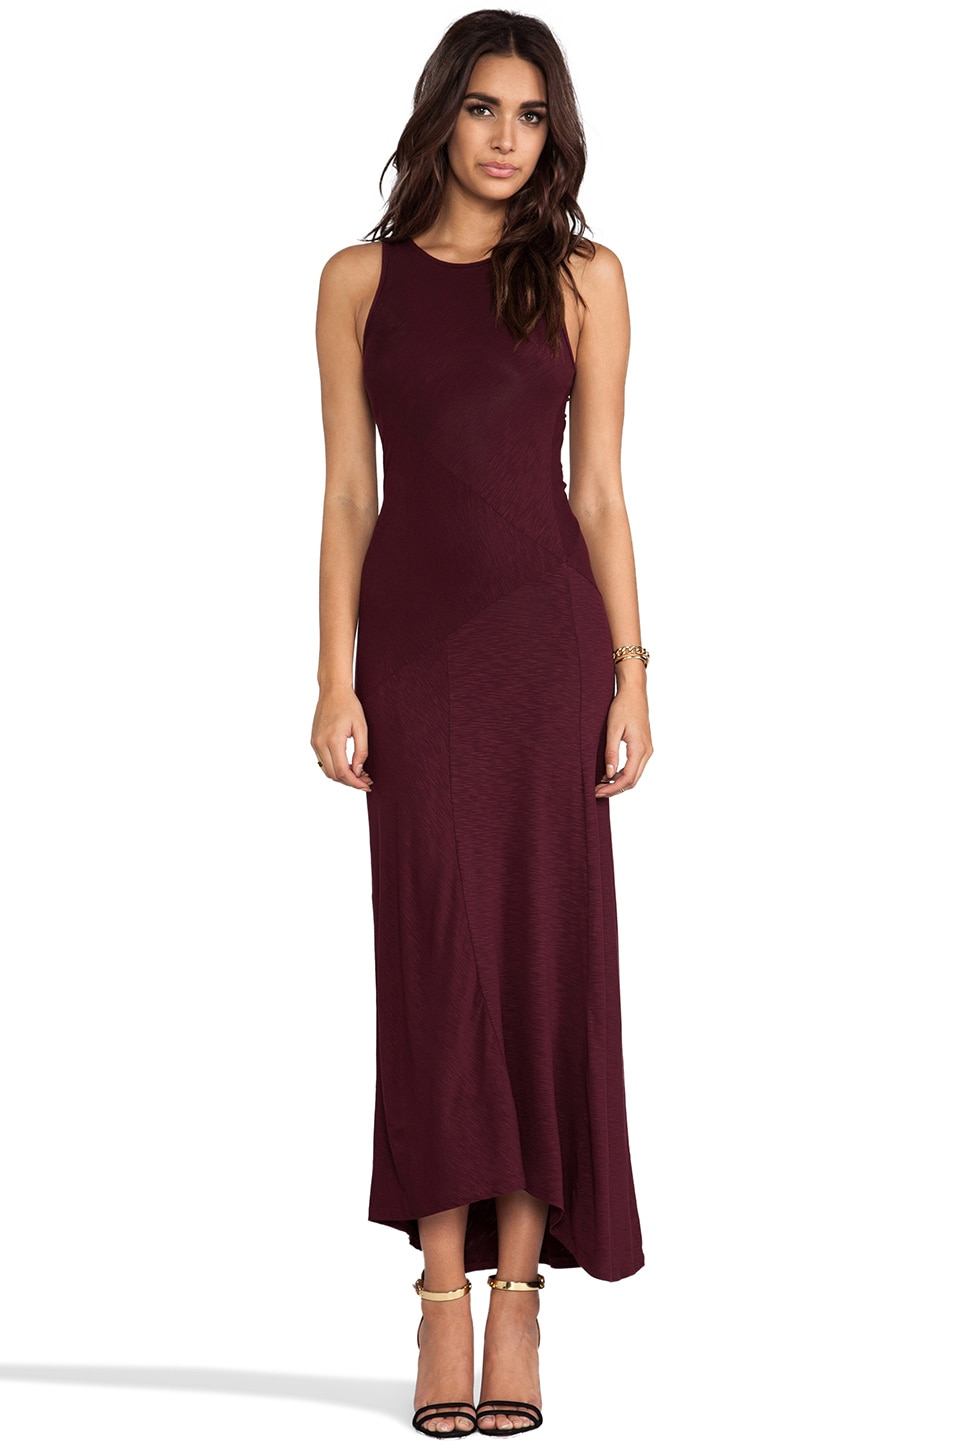 dolan Classic Slub Maxi Dress in Burgundy